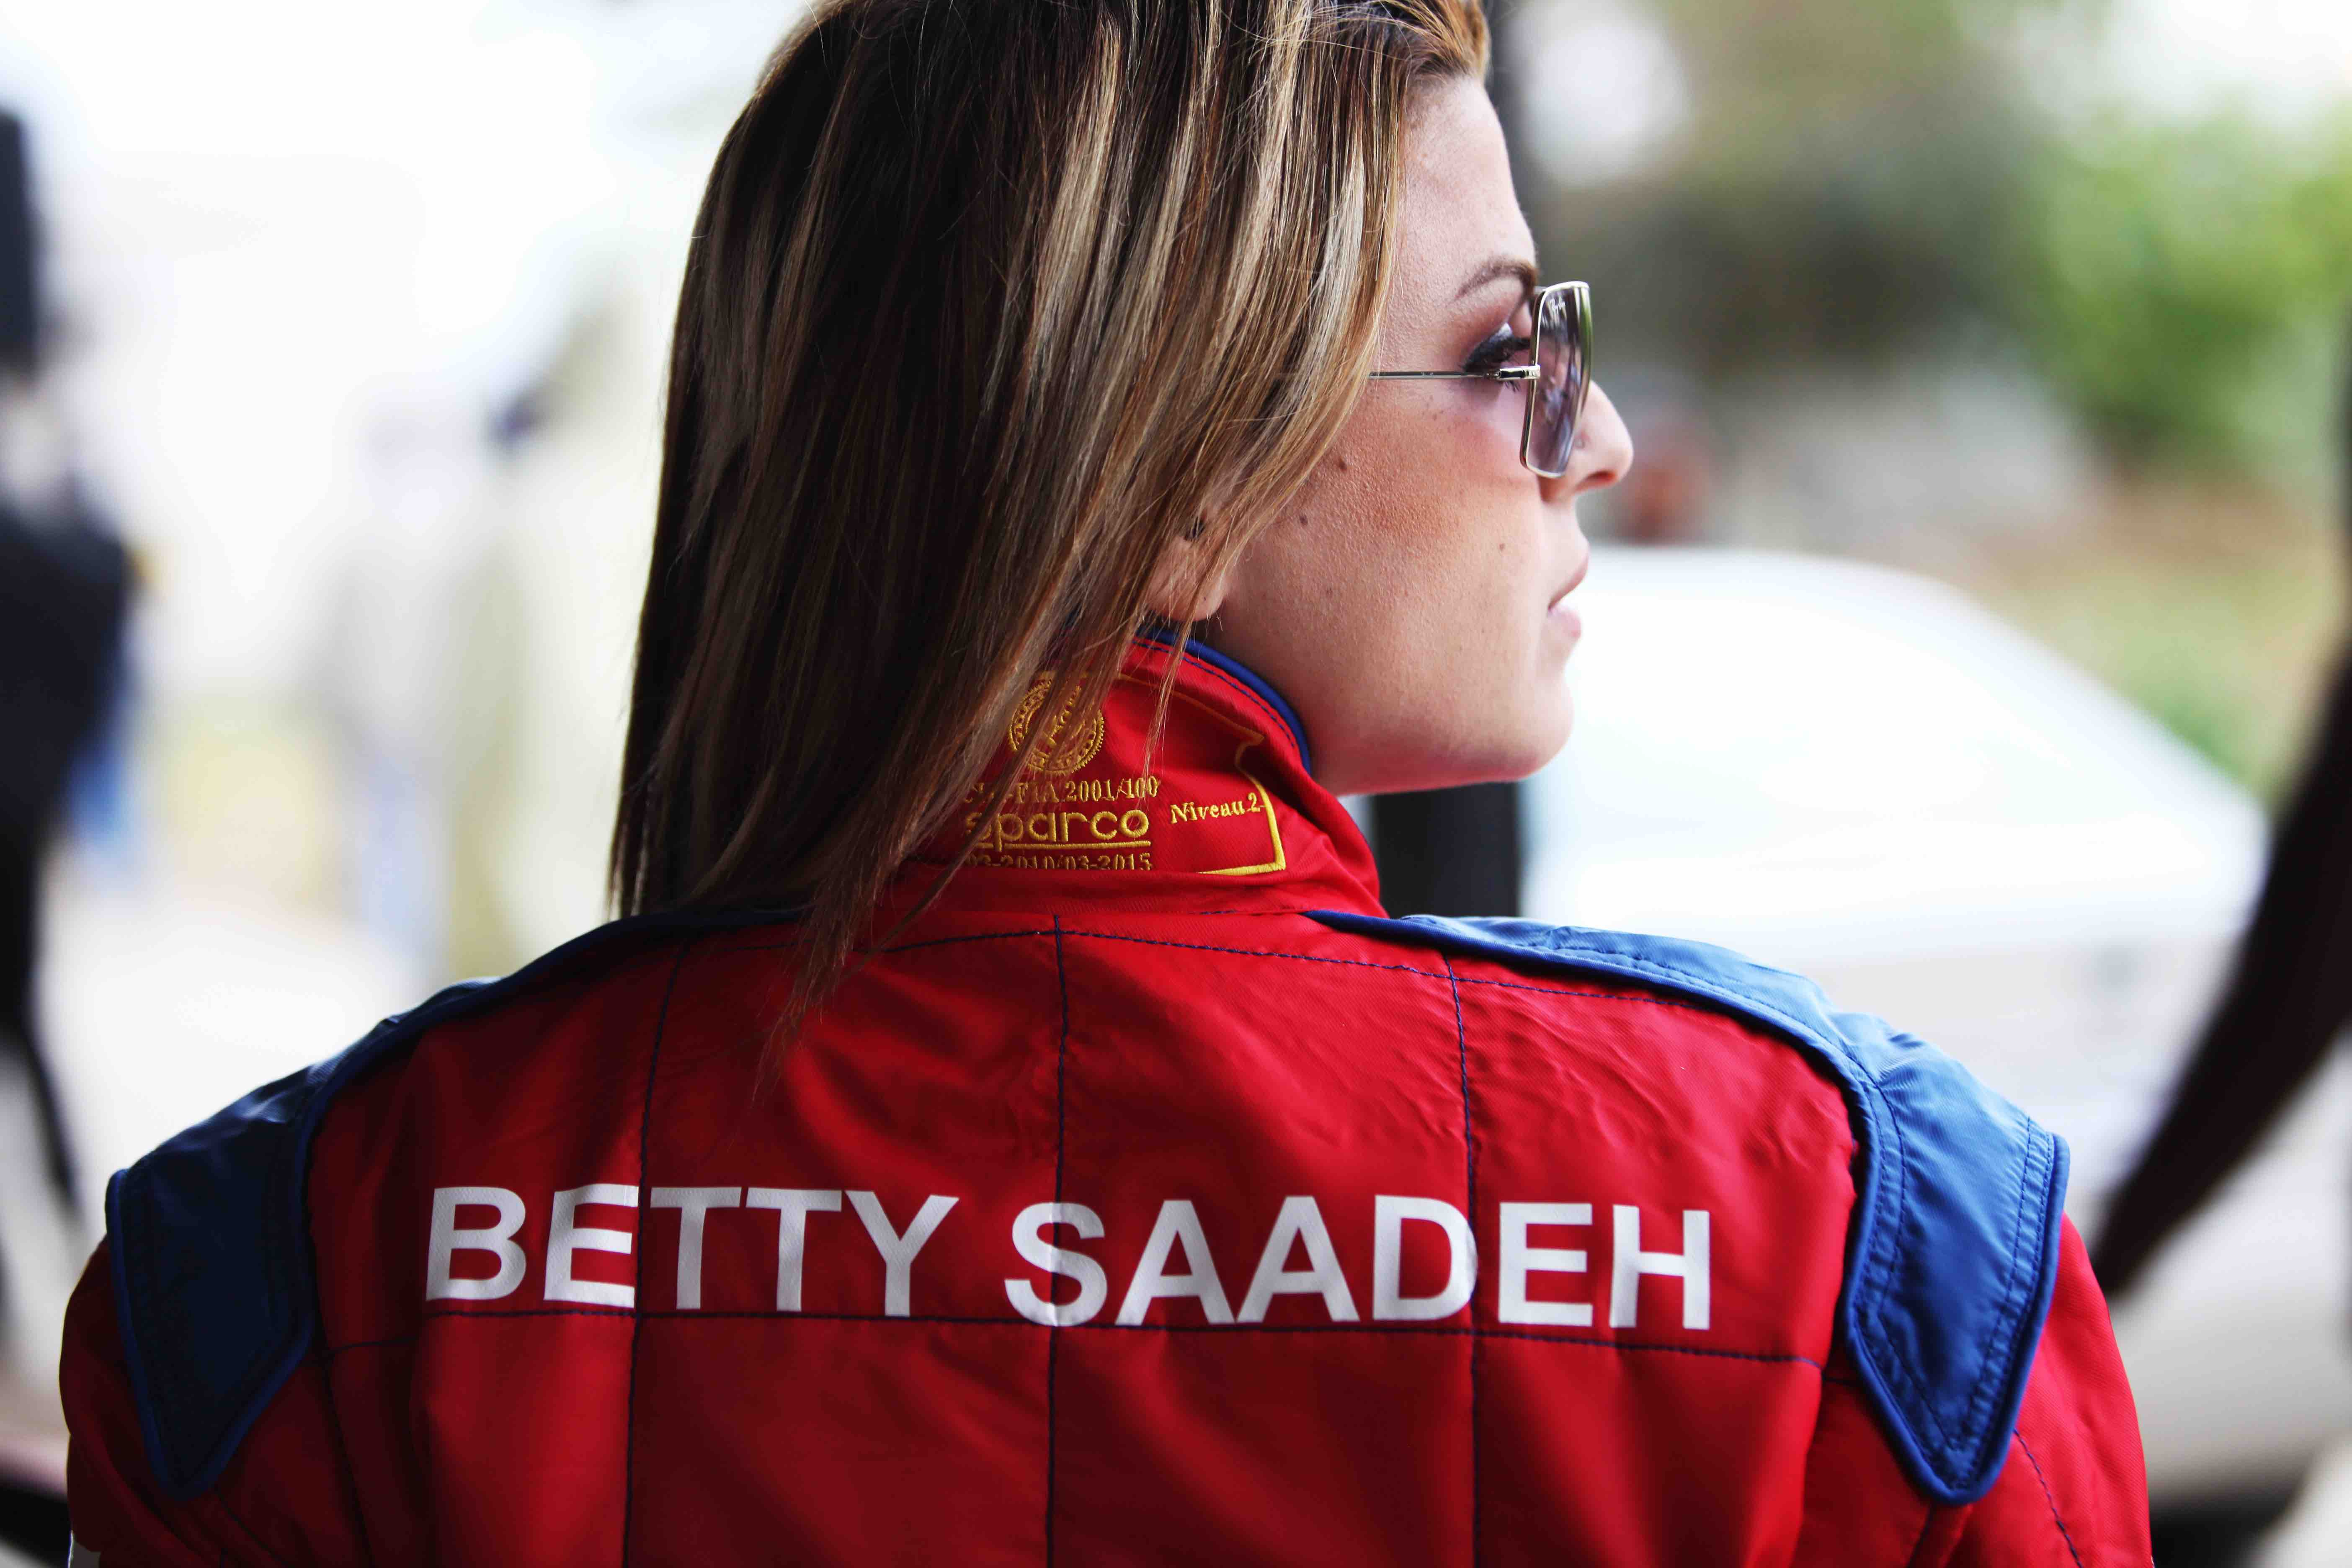 Betty Saadeh - photo by Amber Fares